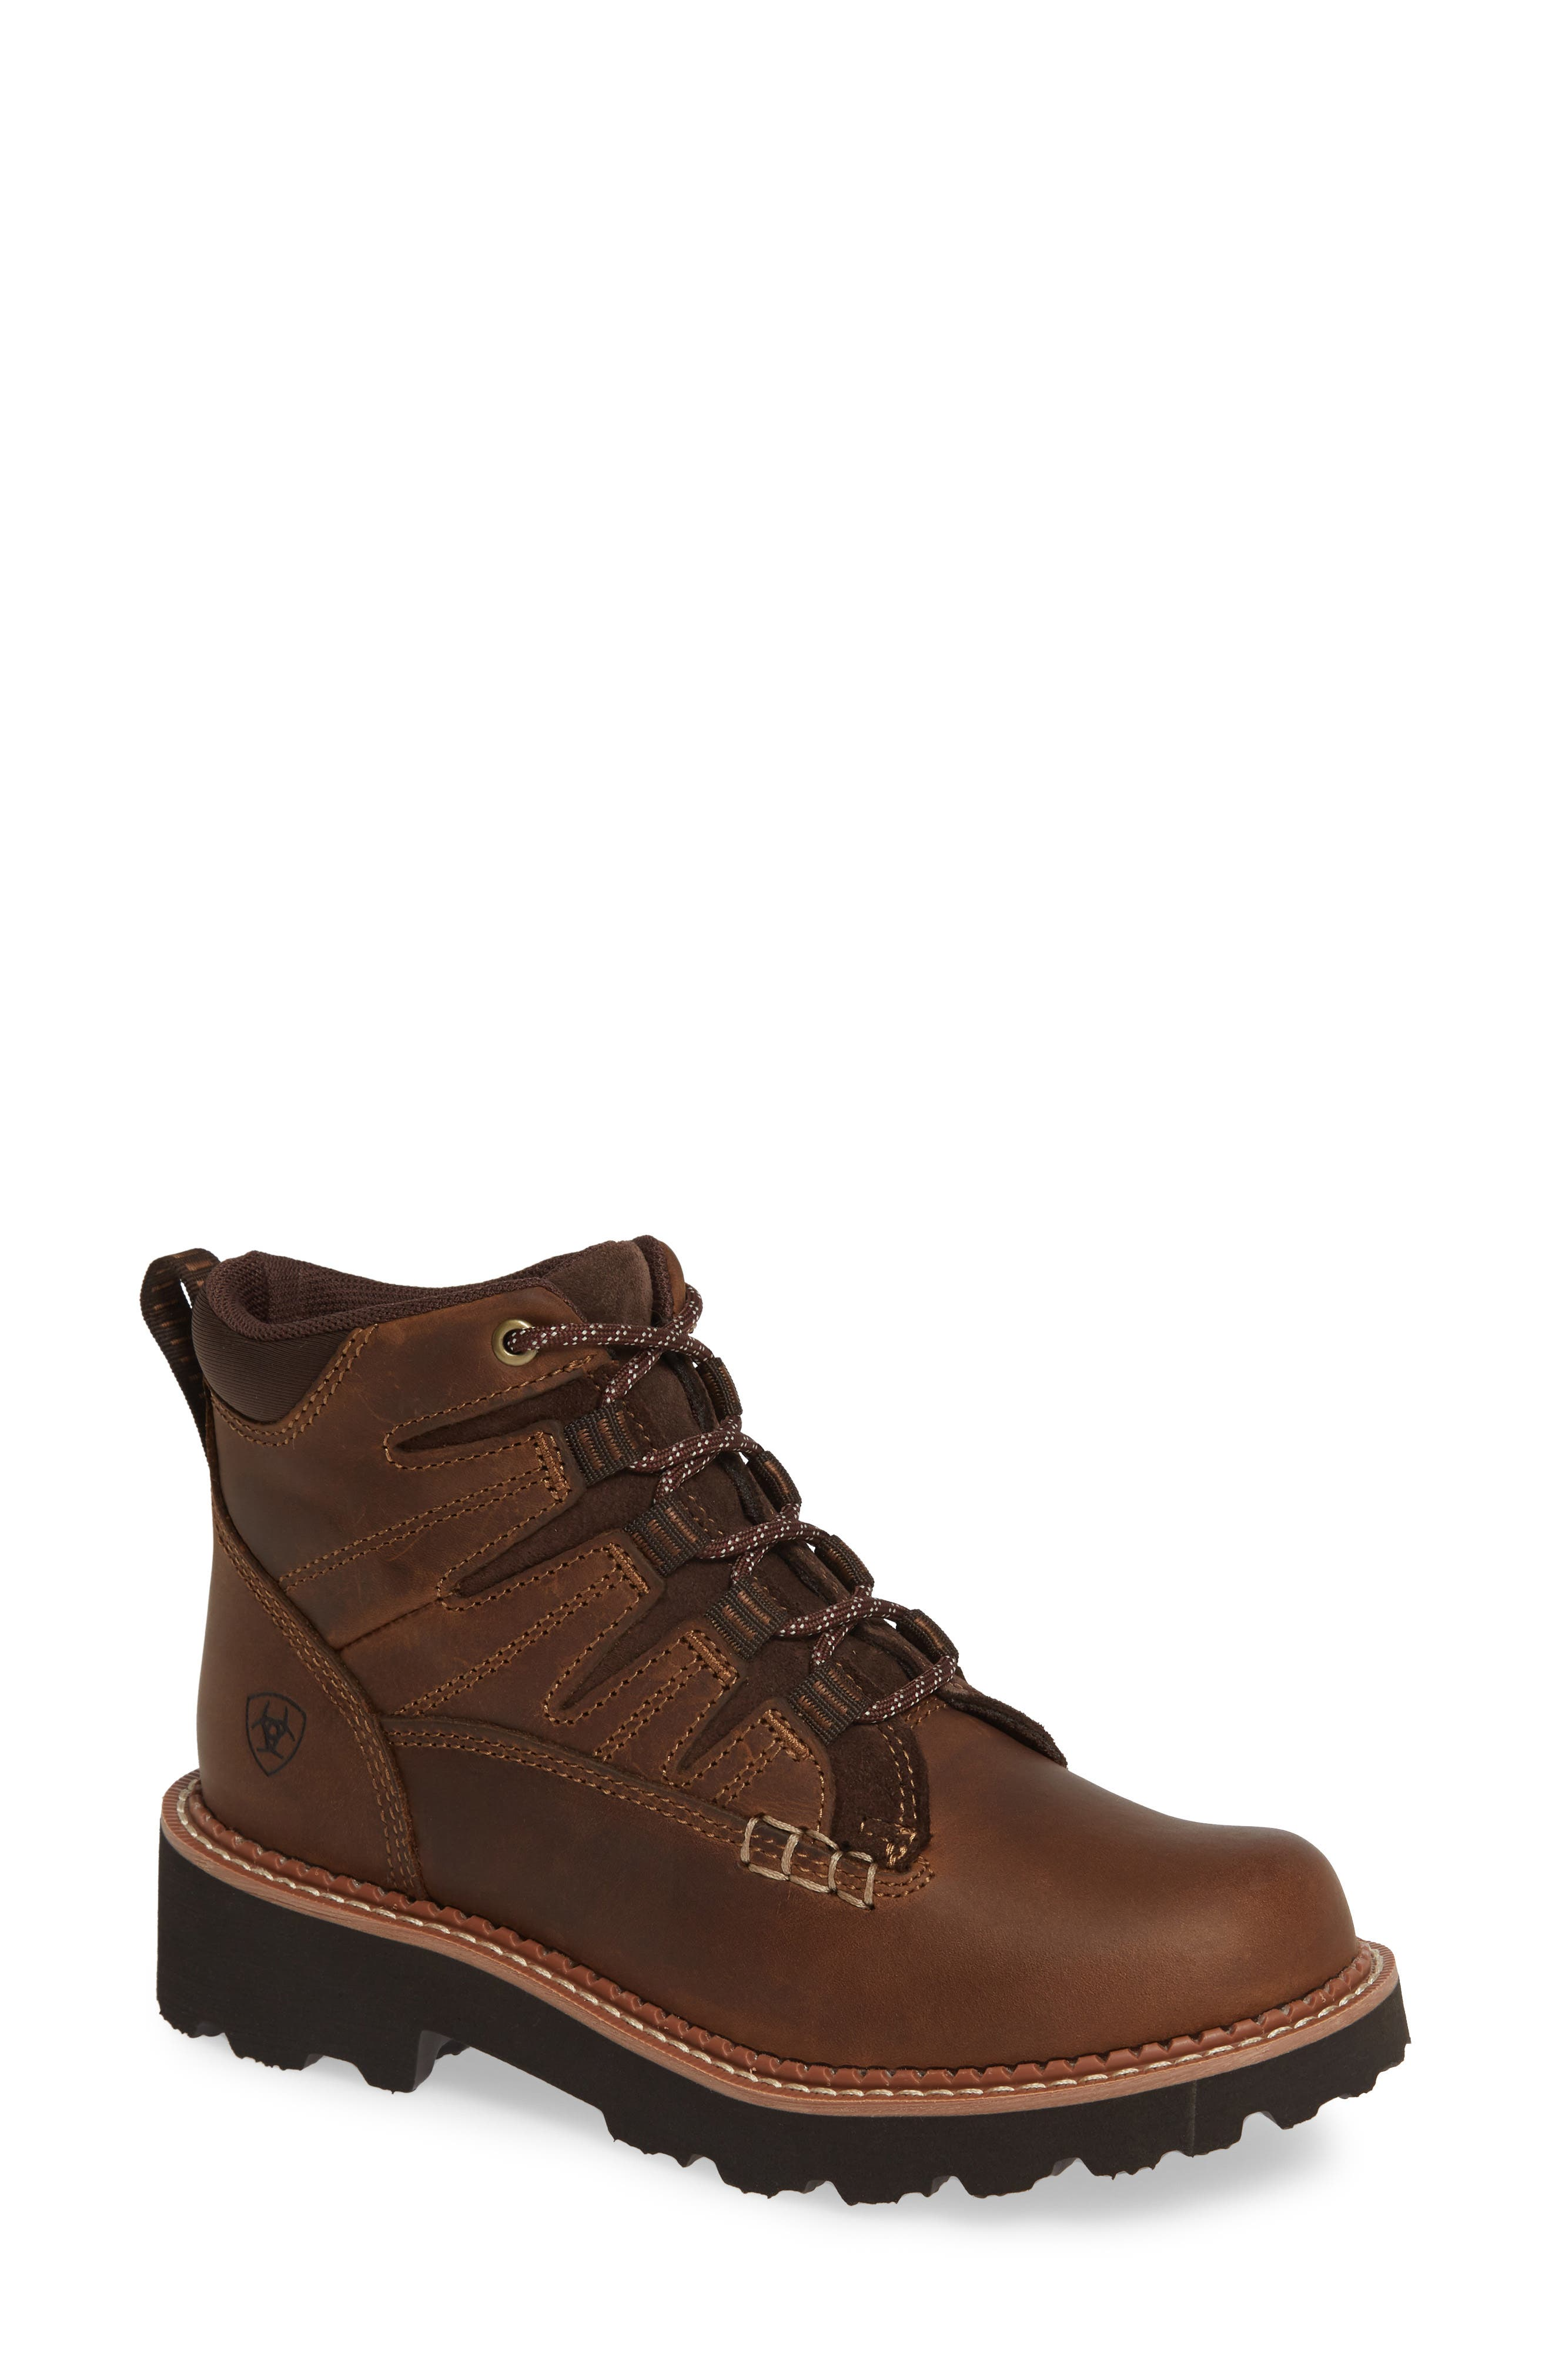 Canyon II Bootie,                         Main,                         color, DISTRESSED BROWN LEATHER